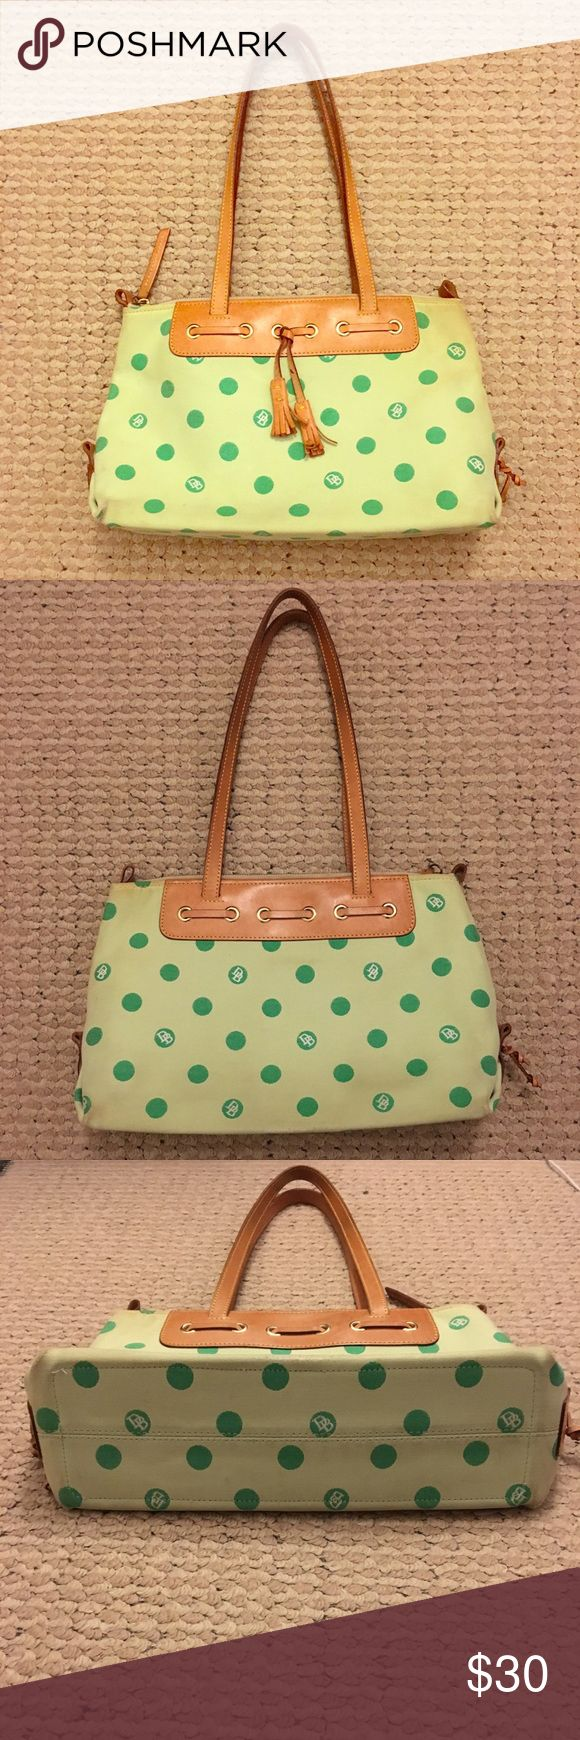 Dooney and Burke polka dot shoulder bag Pre-owned Dooney and Burke polka dot shoulder bag. Very roomy and you can easily fit a lot of your personal belongings! The fun, colorful design will surely turn heads and brighten up your closet!  Inside are two equally sized pocket compartments. The bag zips fully closed. People magazine illustrated there for size comparison.   There are scuff marks on the bottom four corners, light brown staining at the top near the zipper, and slight black marks on…